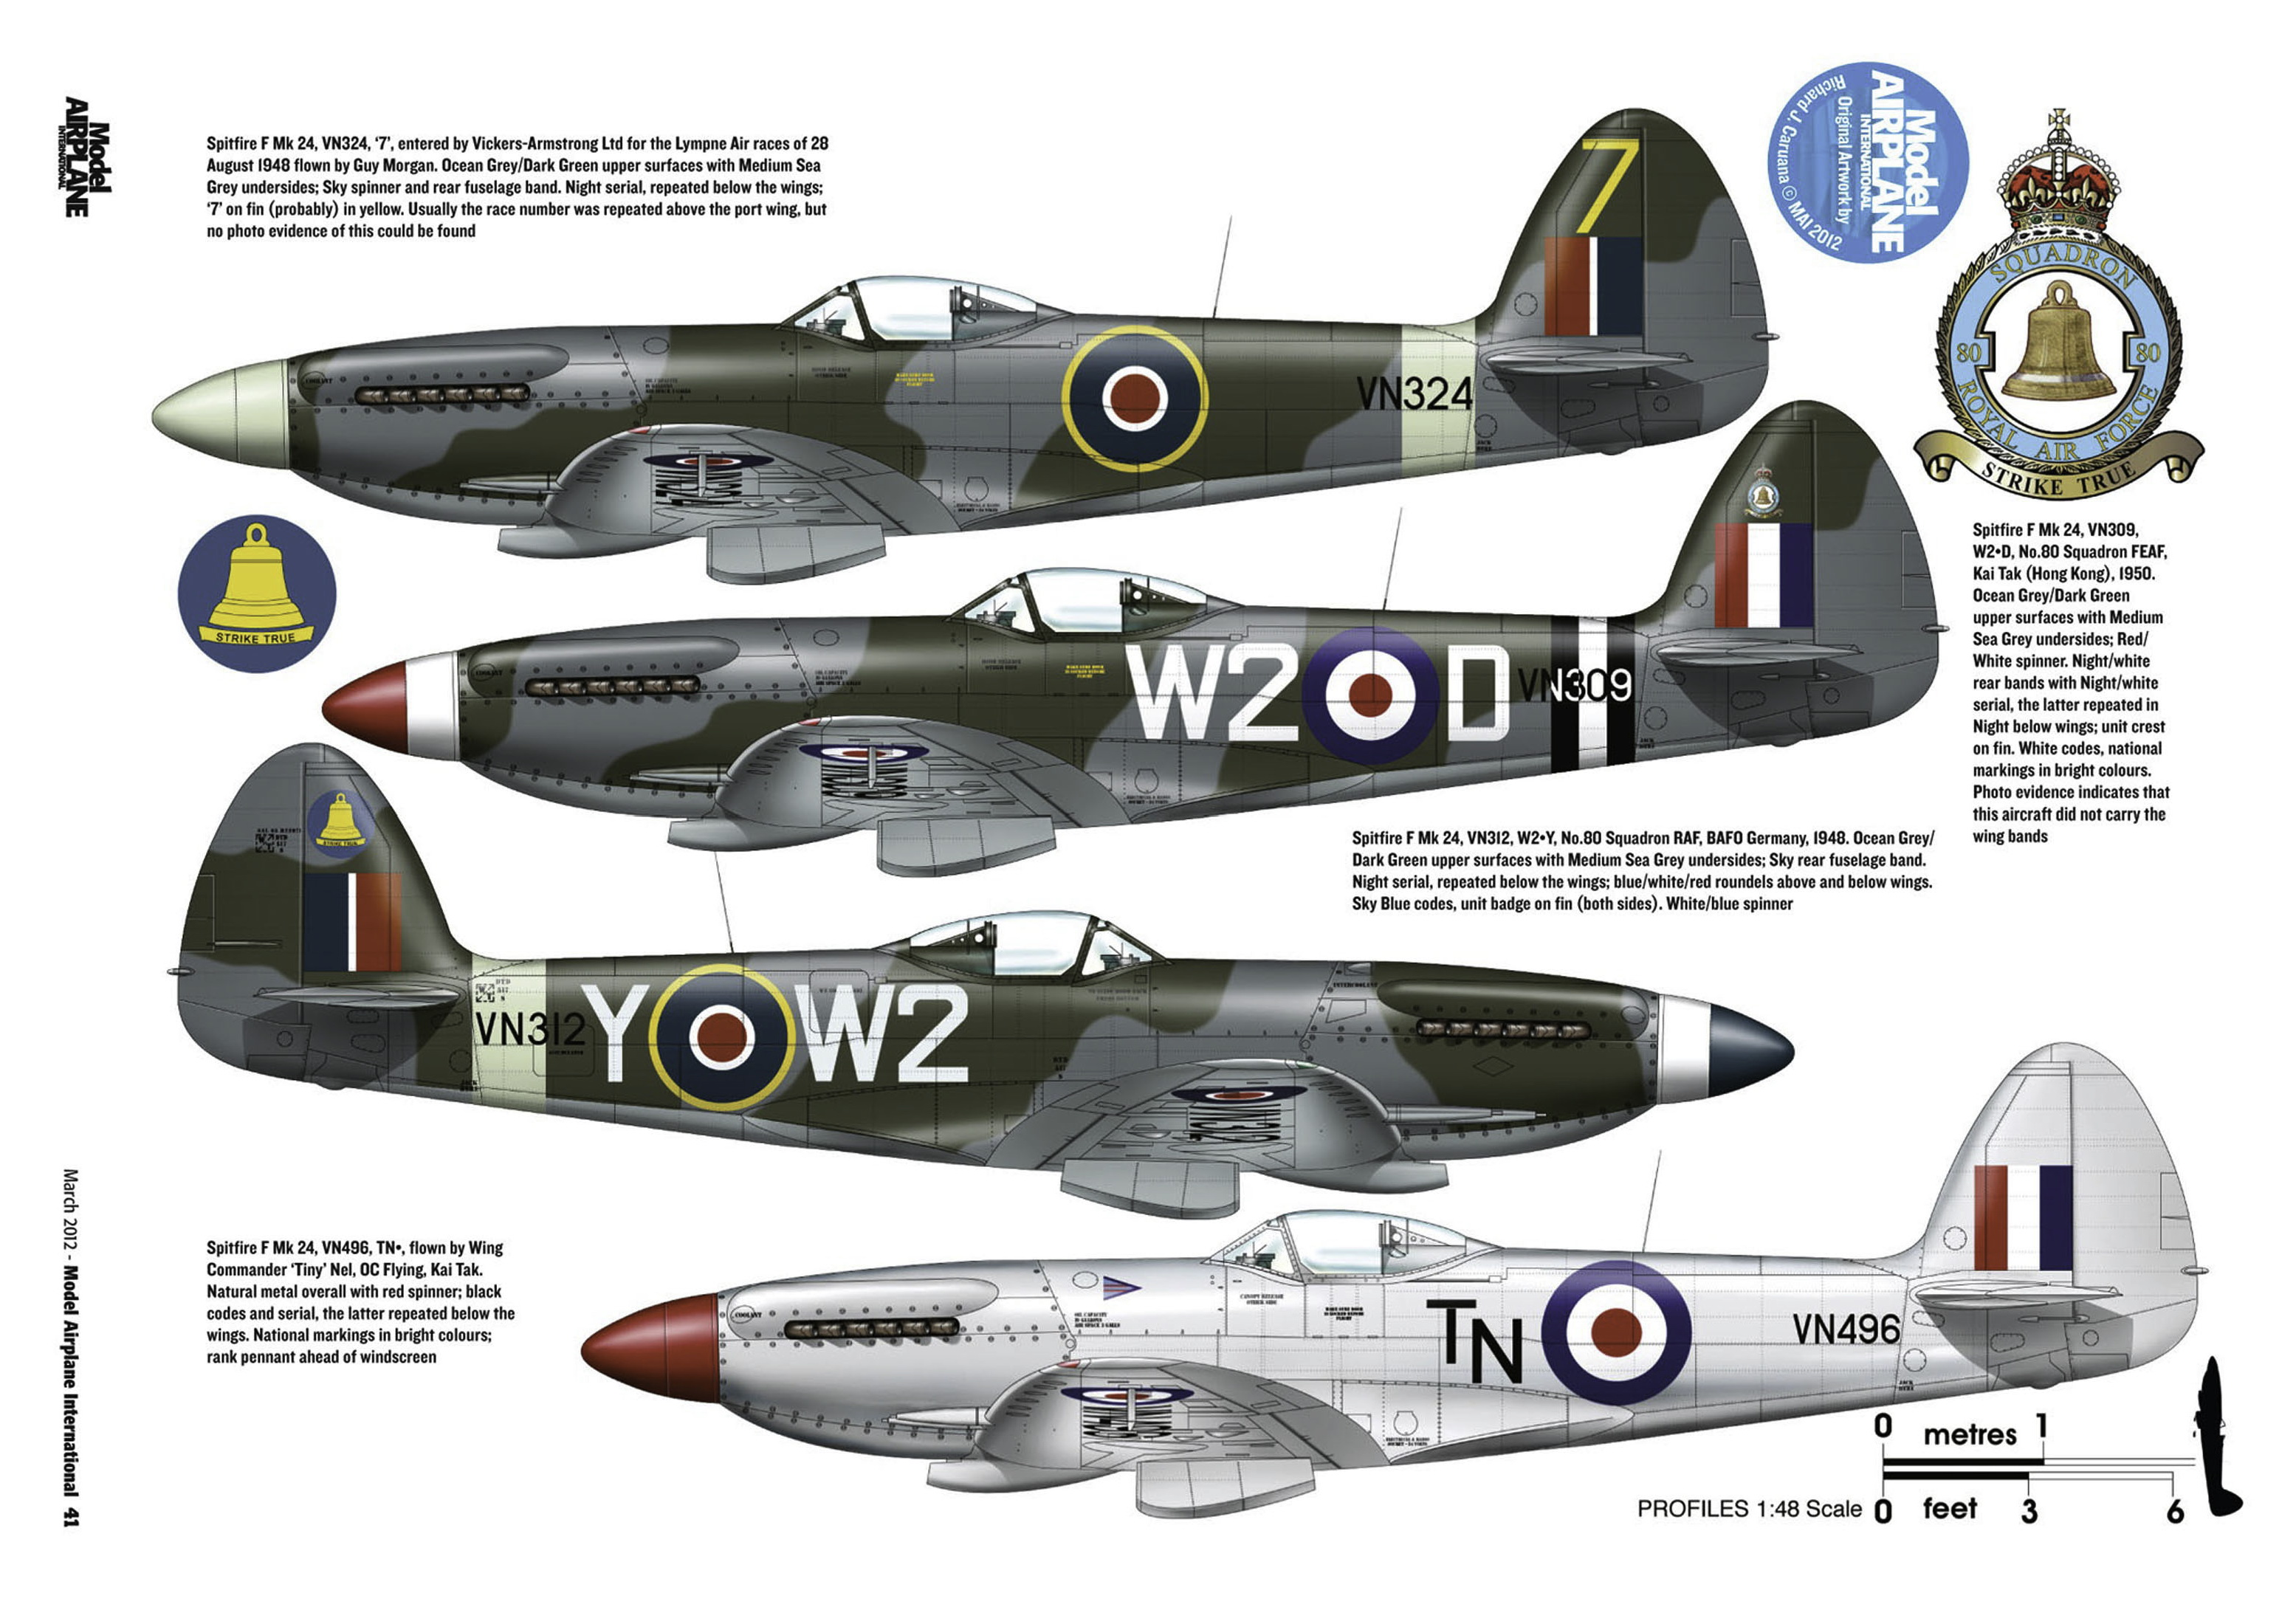 Supermarine Spitfire profiles by Model Airplane Int 080 2012 03 Page 41